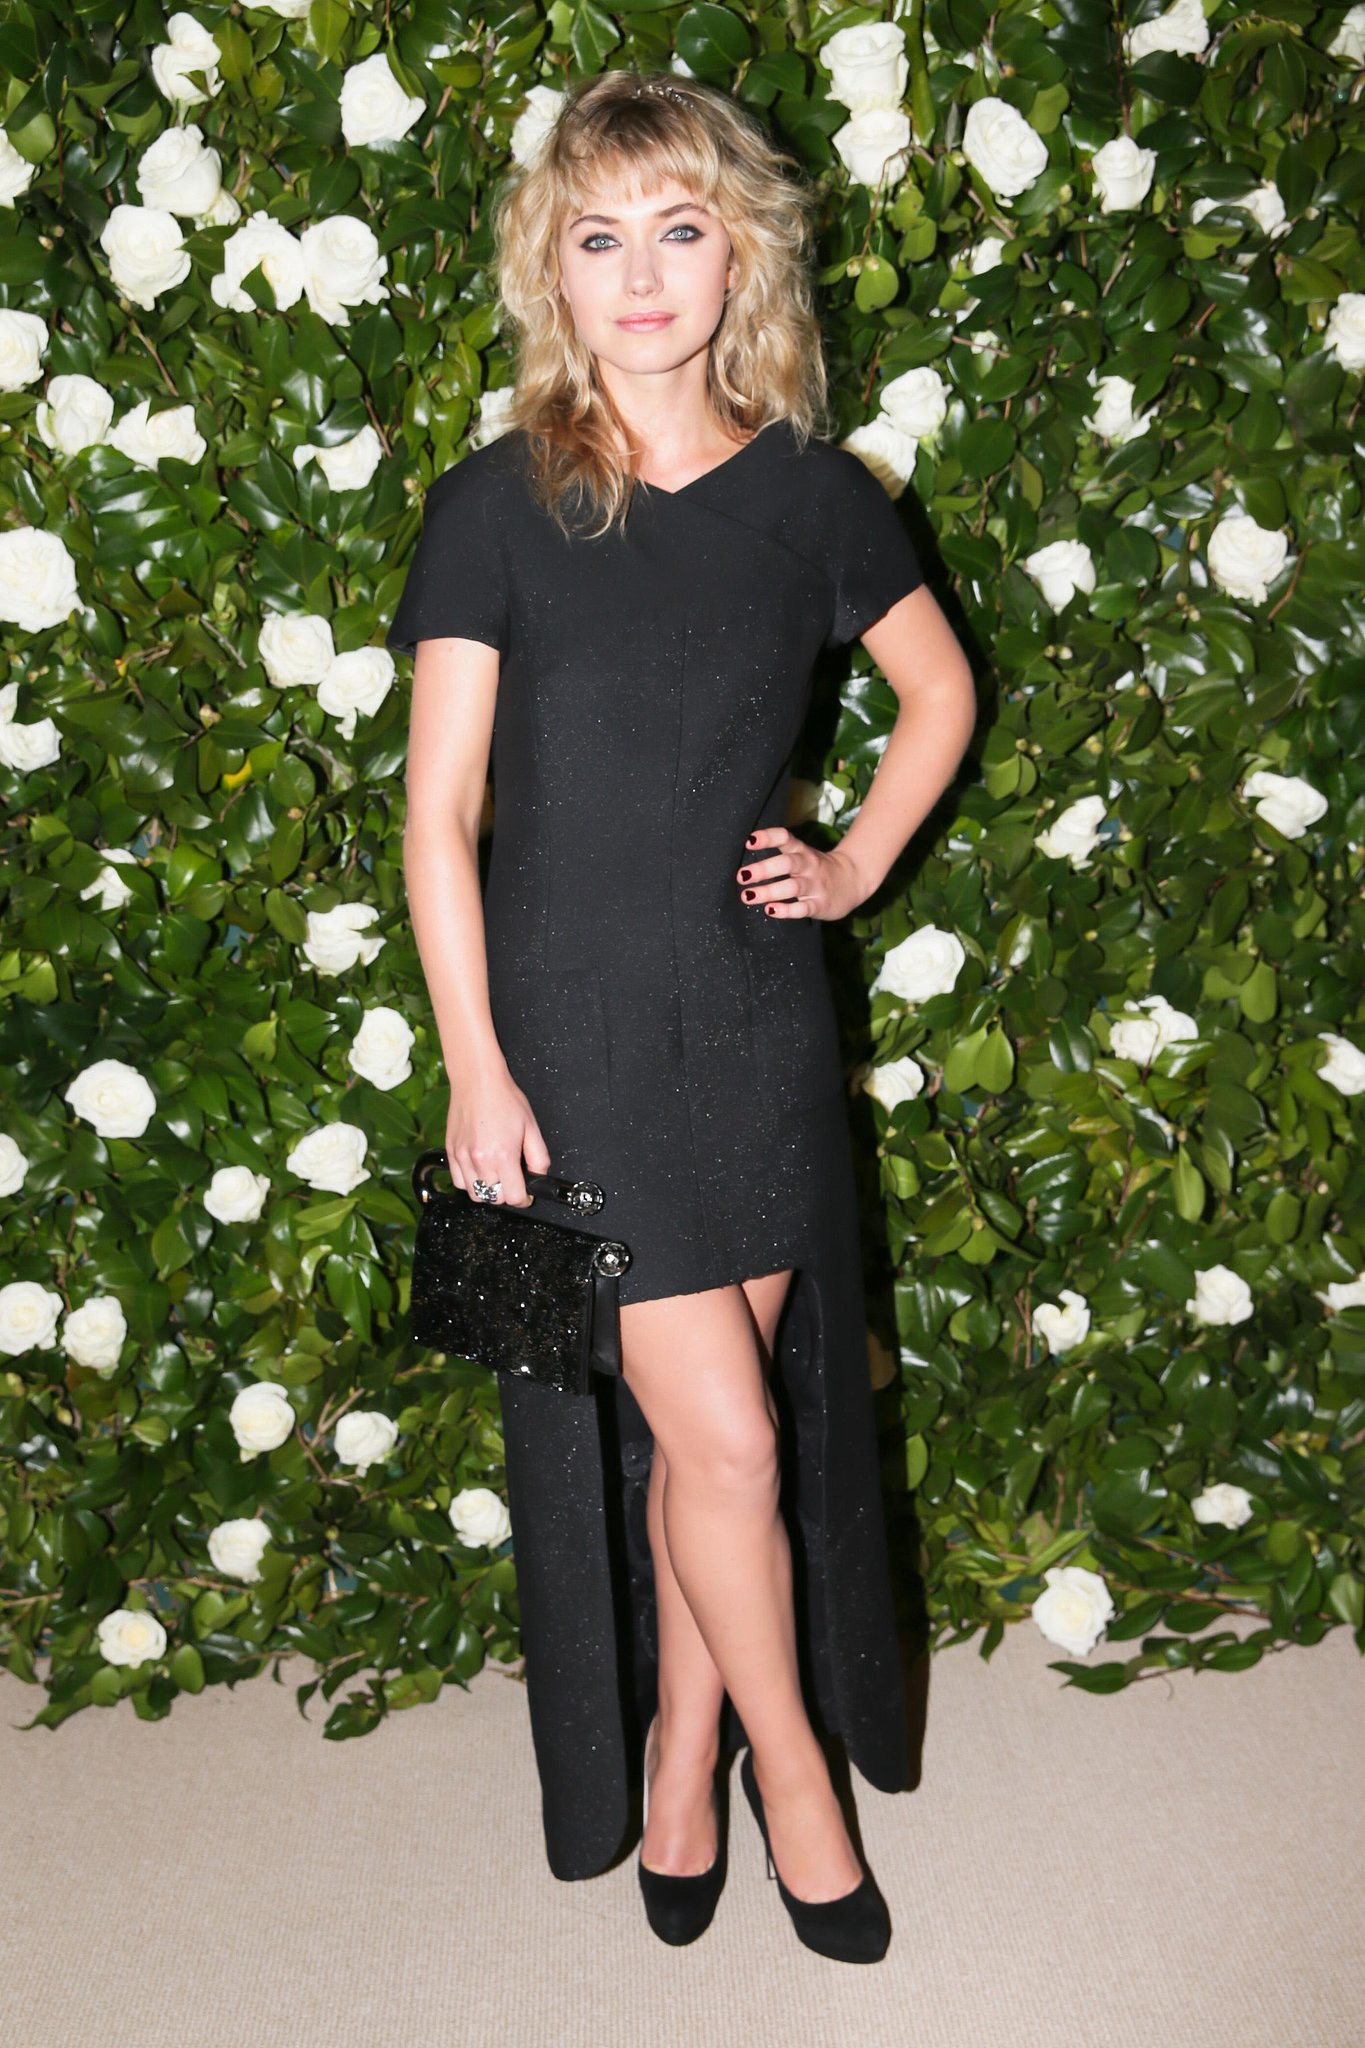 Imogen Poots went asymmetric in a leg-baring Chanel design and the label's sparkling headband while at the MoMA event.